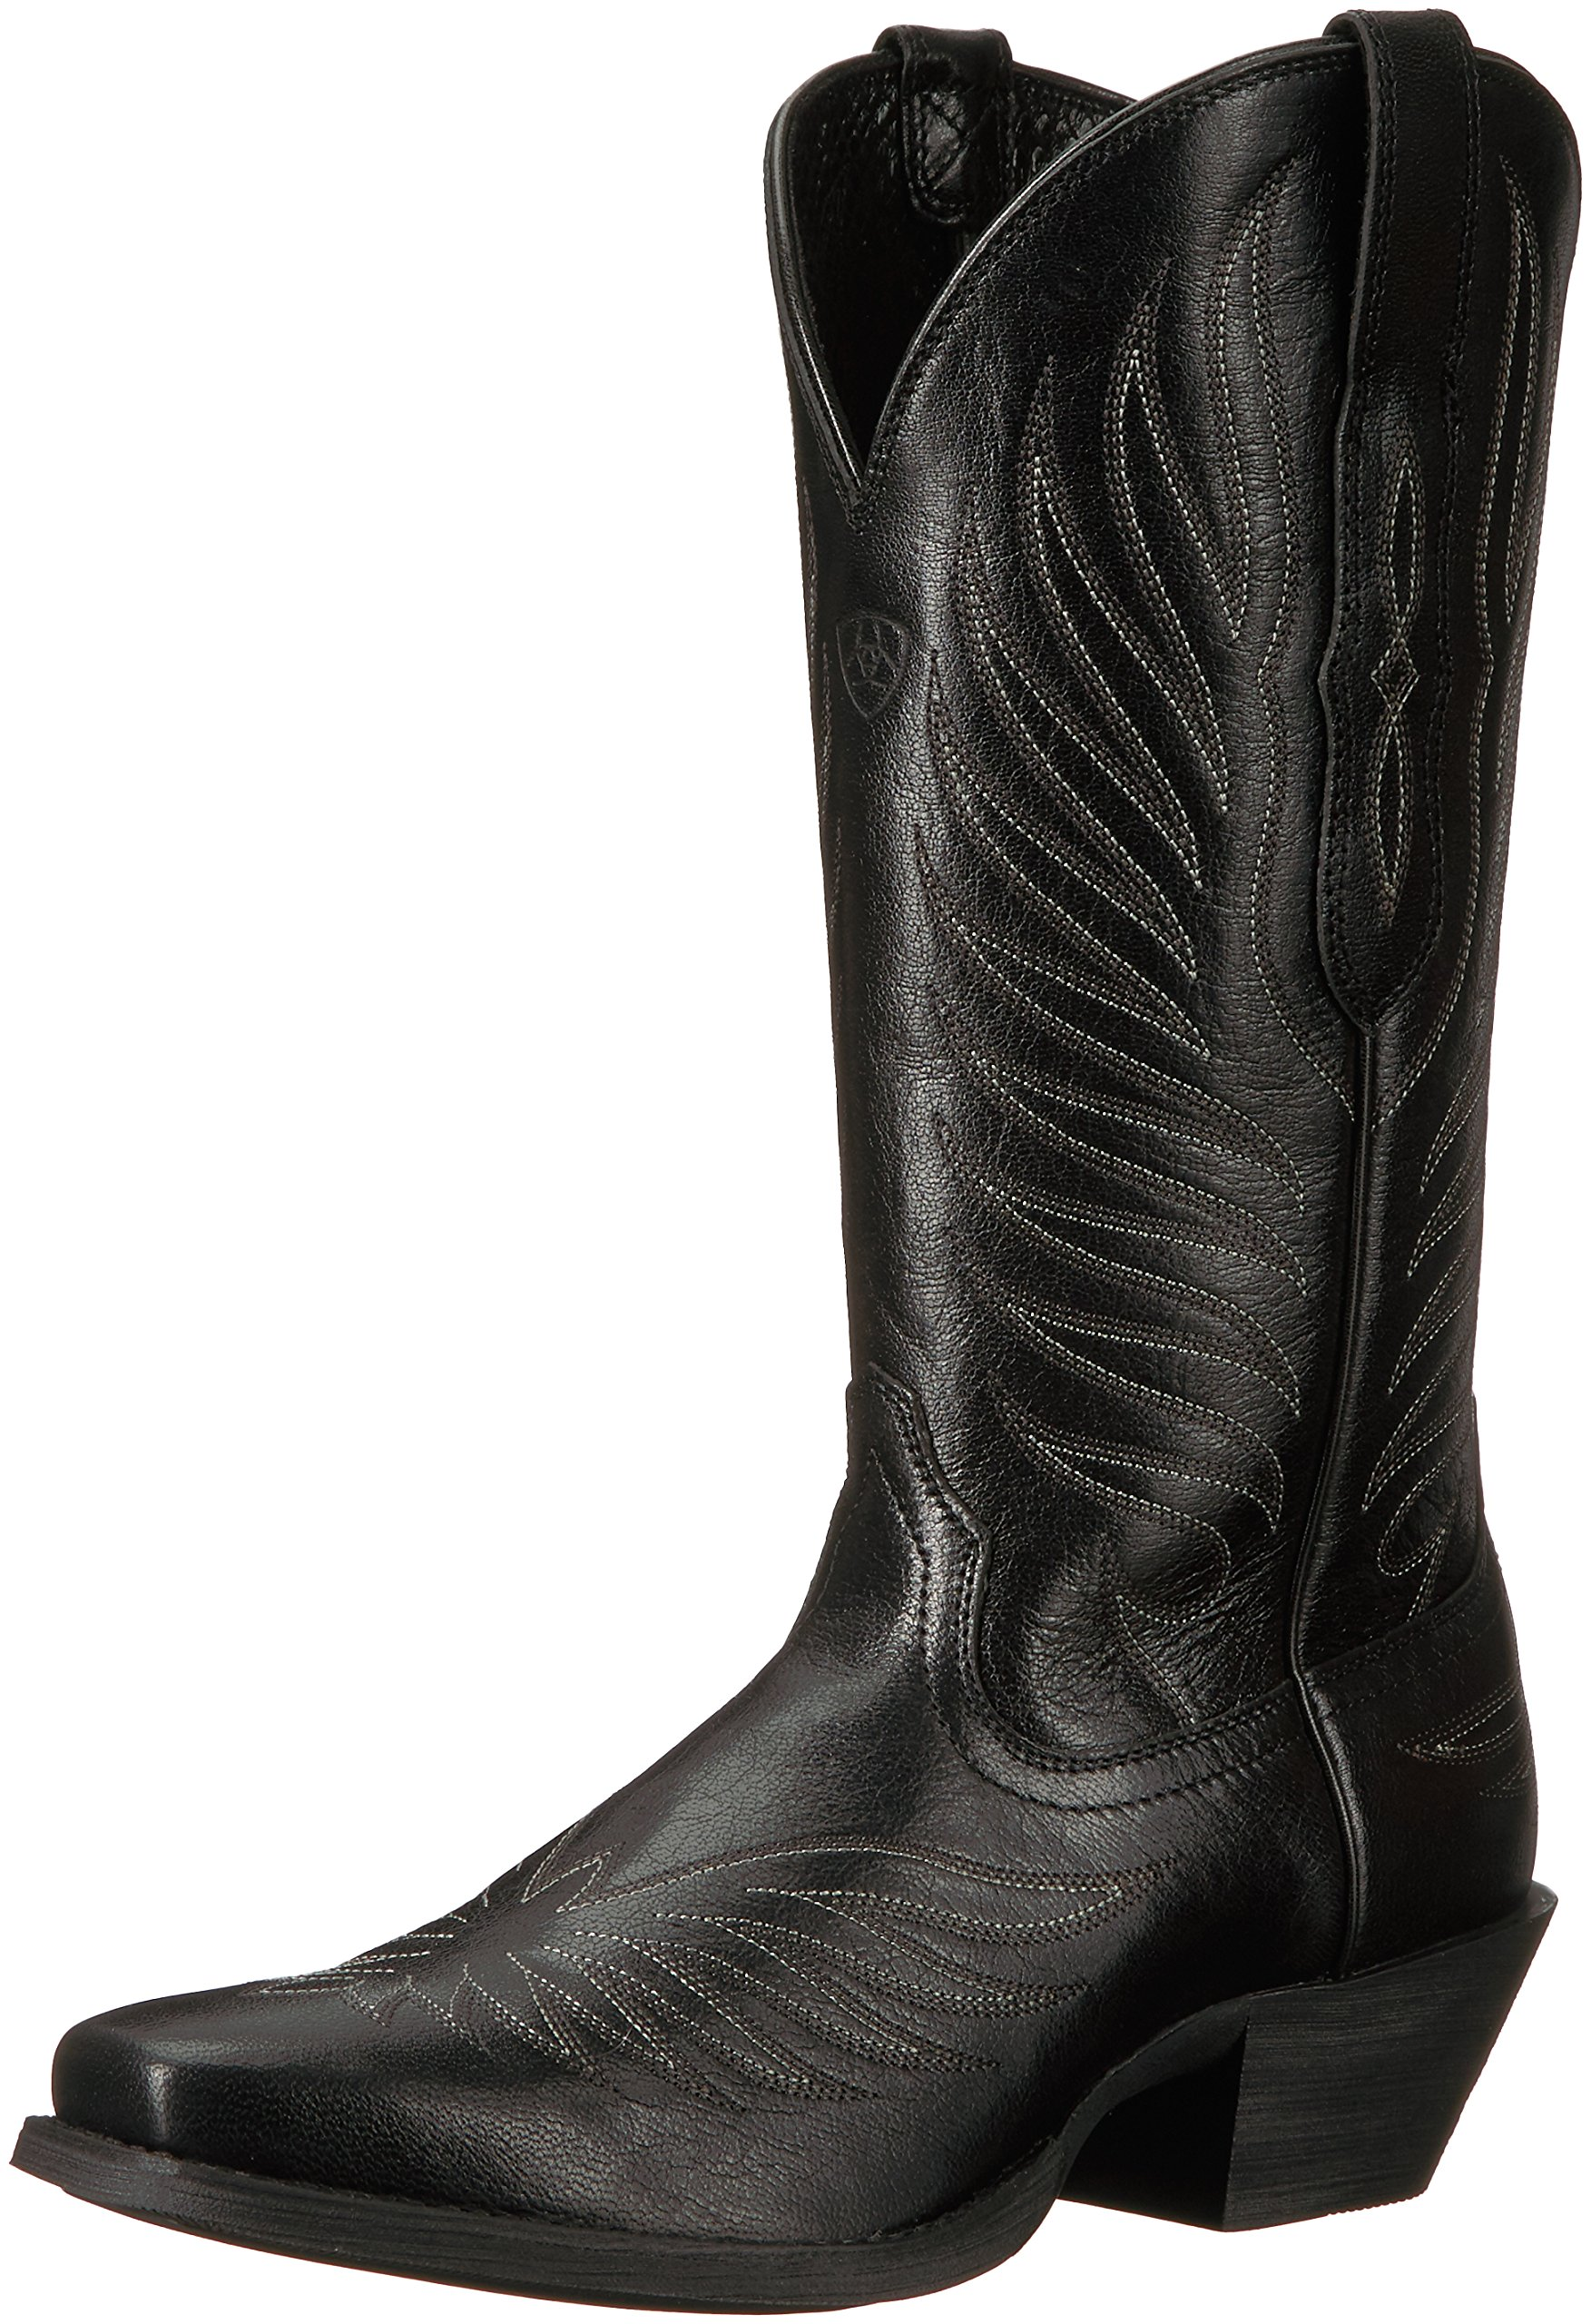 Ariat Women's Round up Phoenix Work Boot, Old Black, 6.5 B US by Ariat